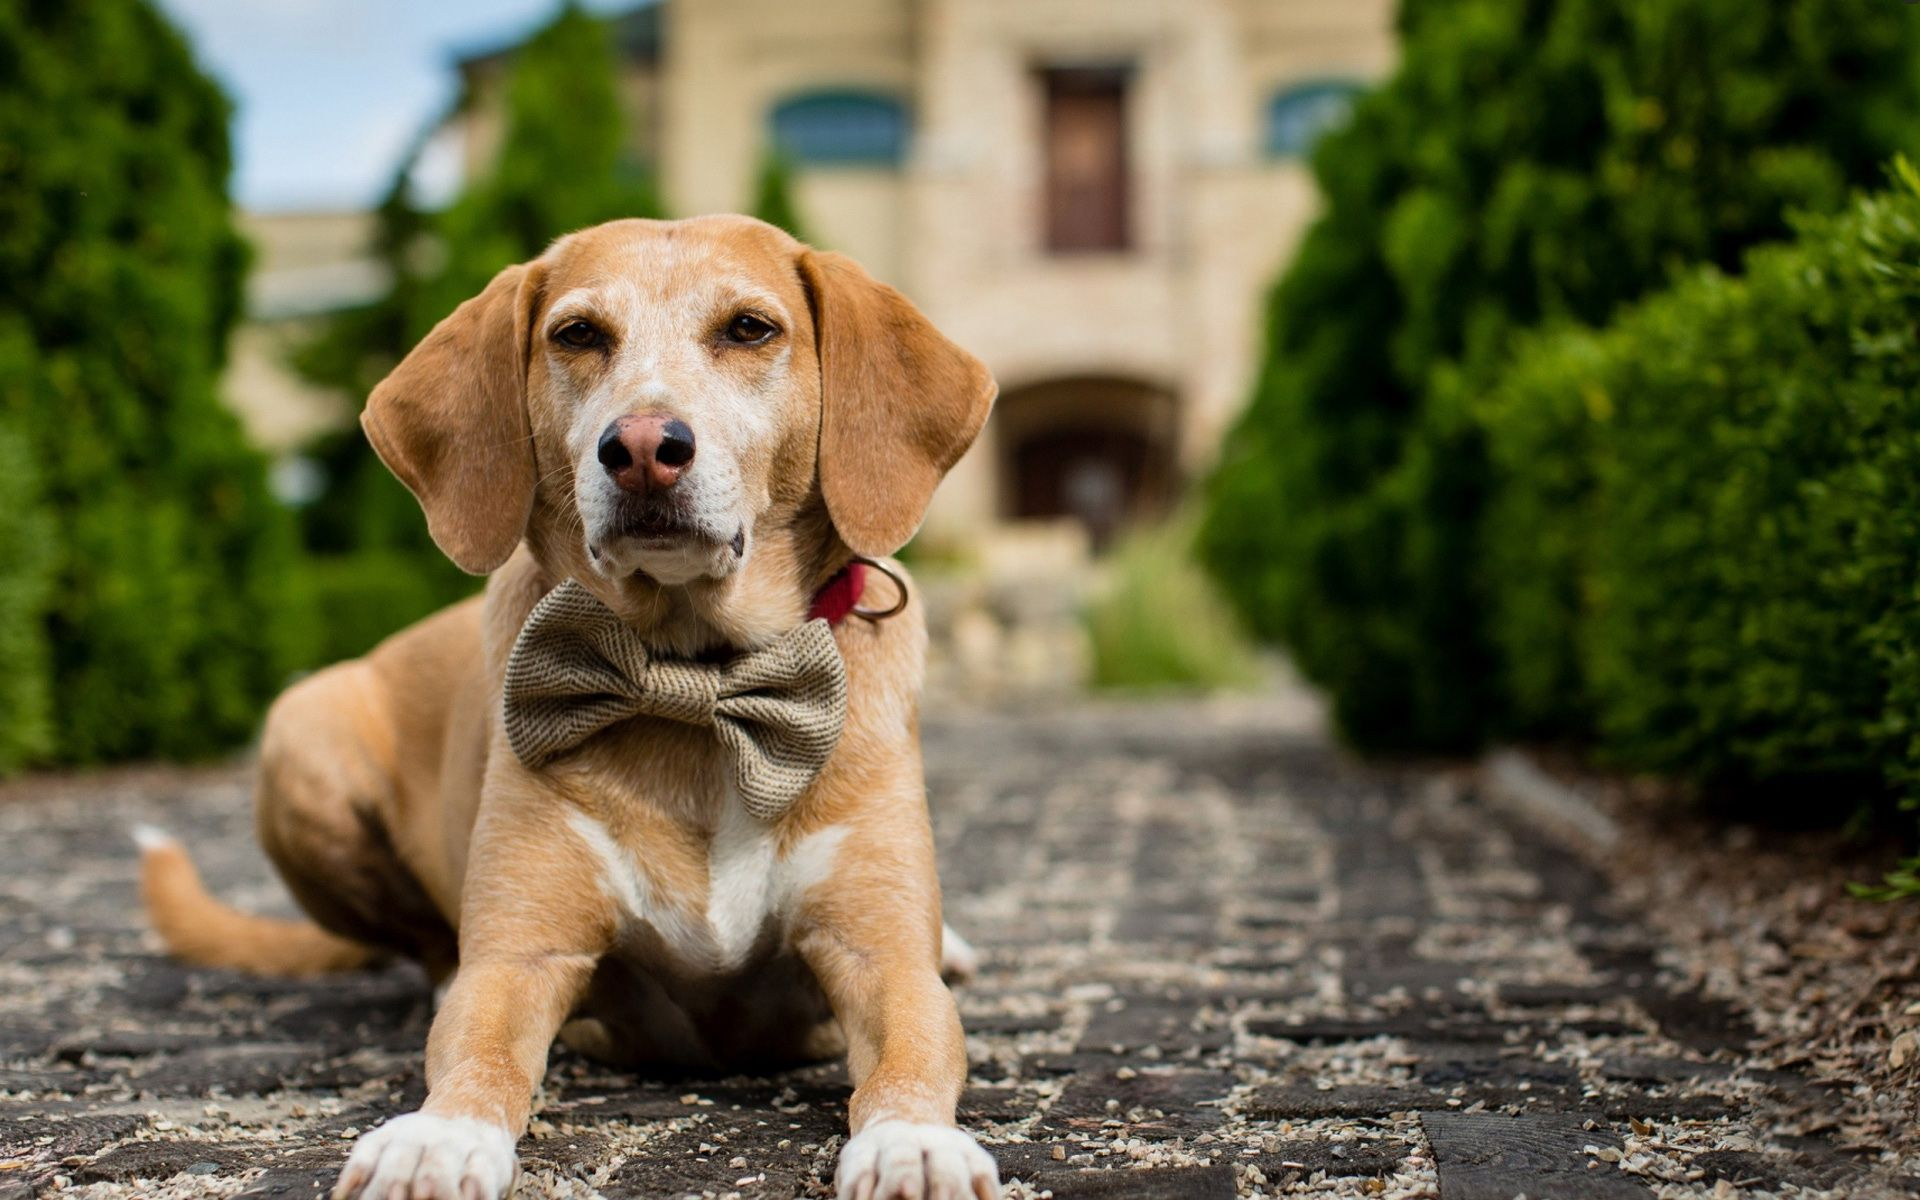 Dog Photography Images Free Download Hd Wallpapers Dogs Puppy Cute